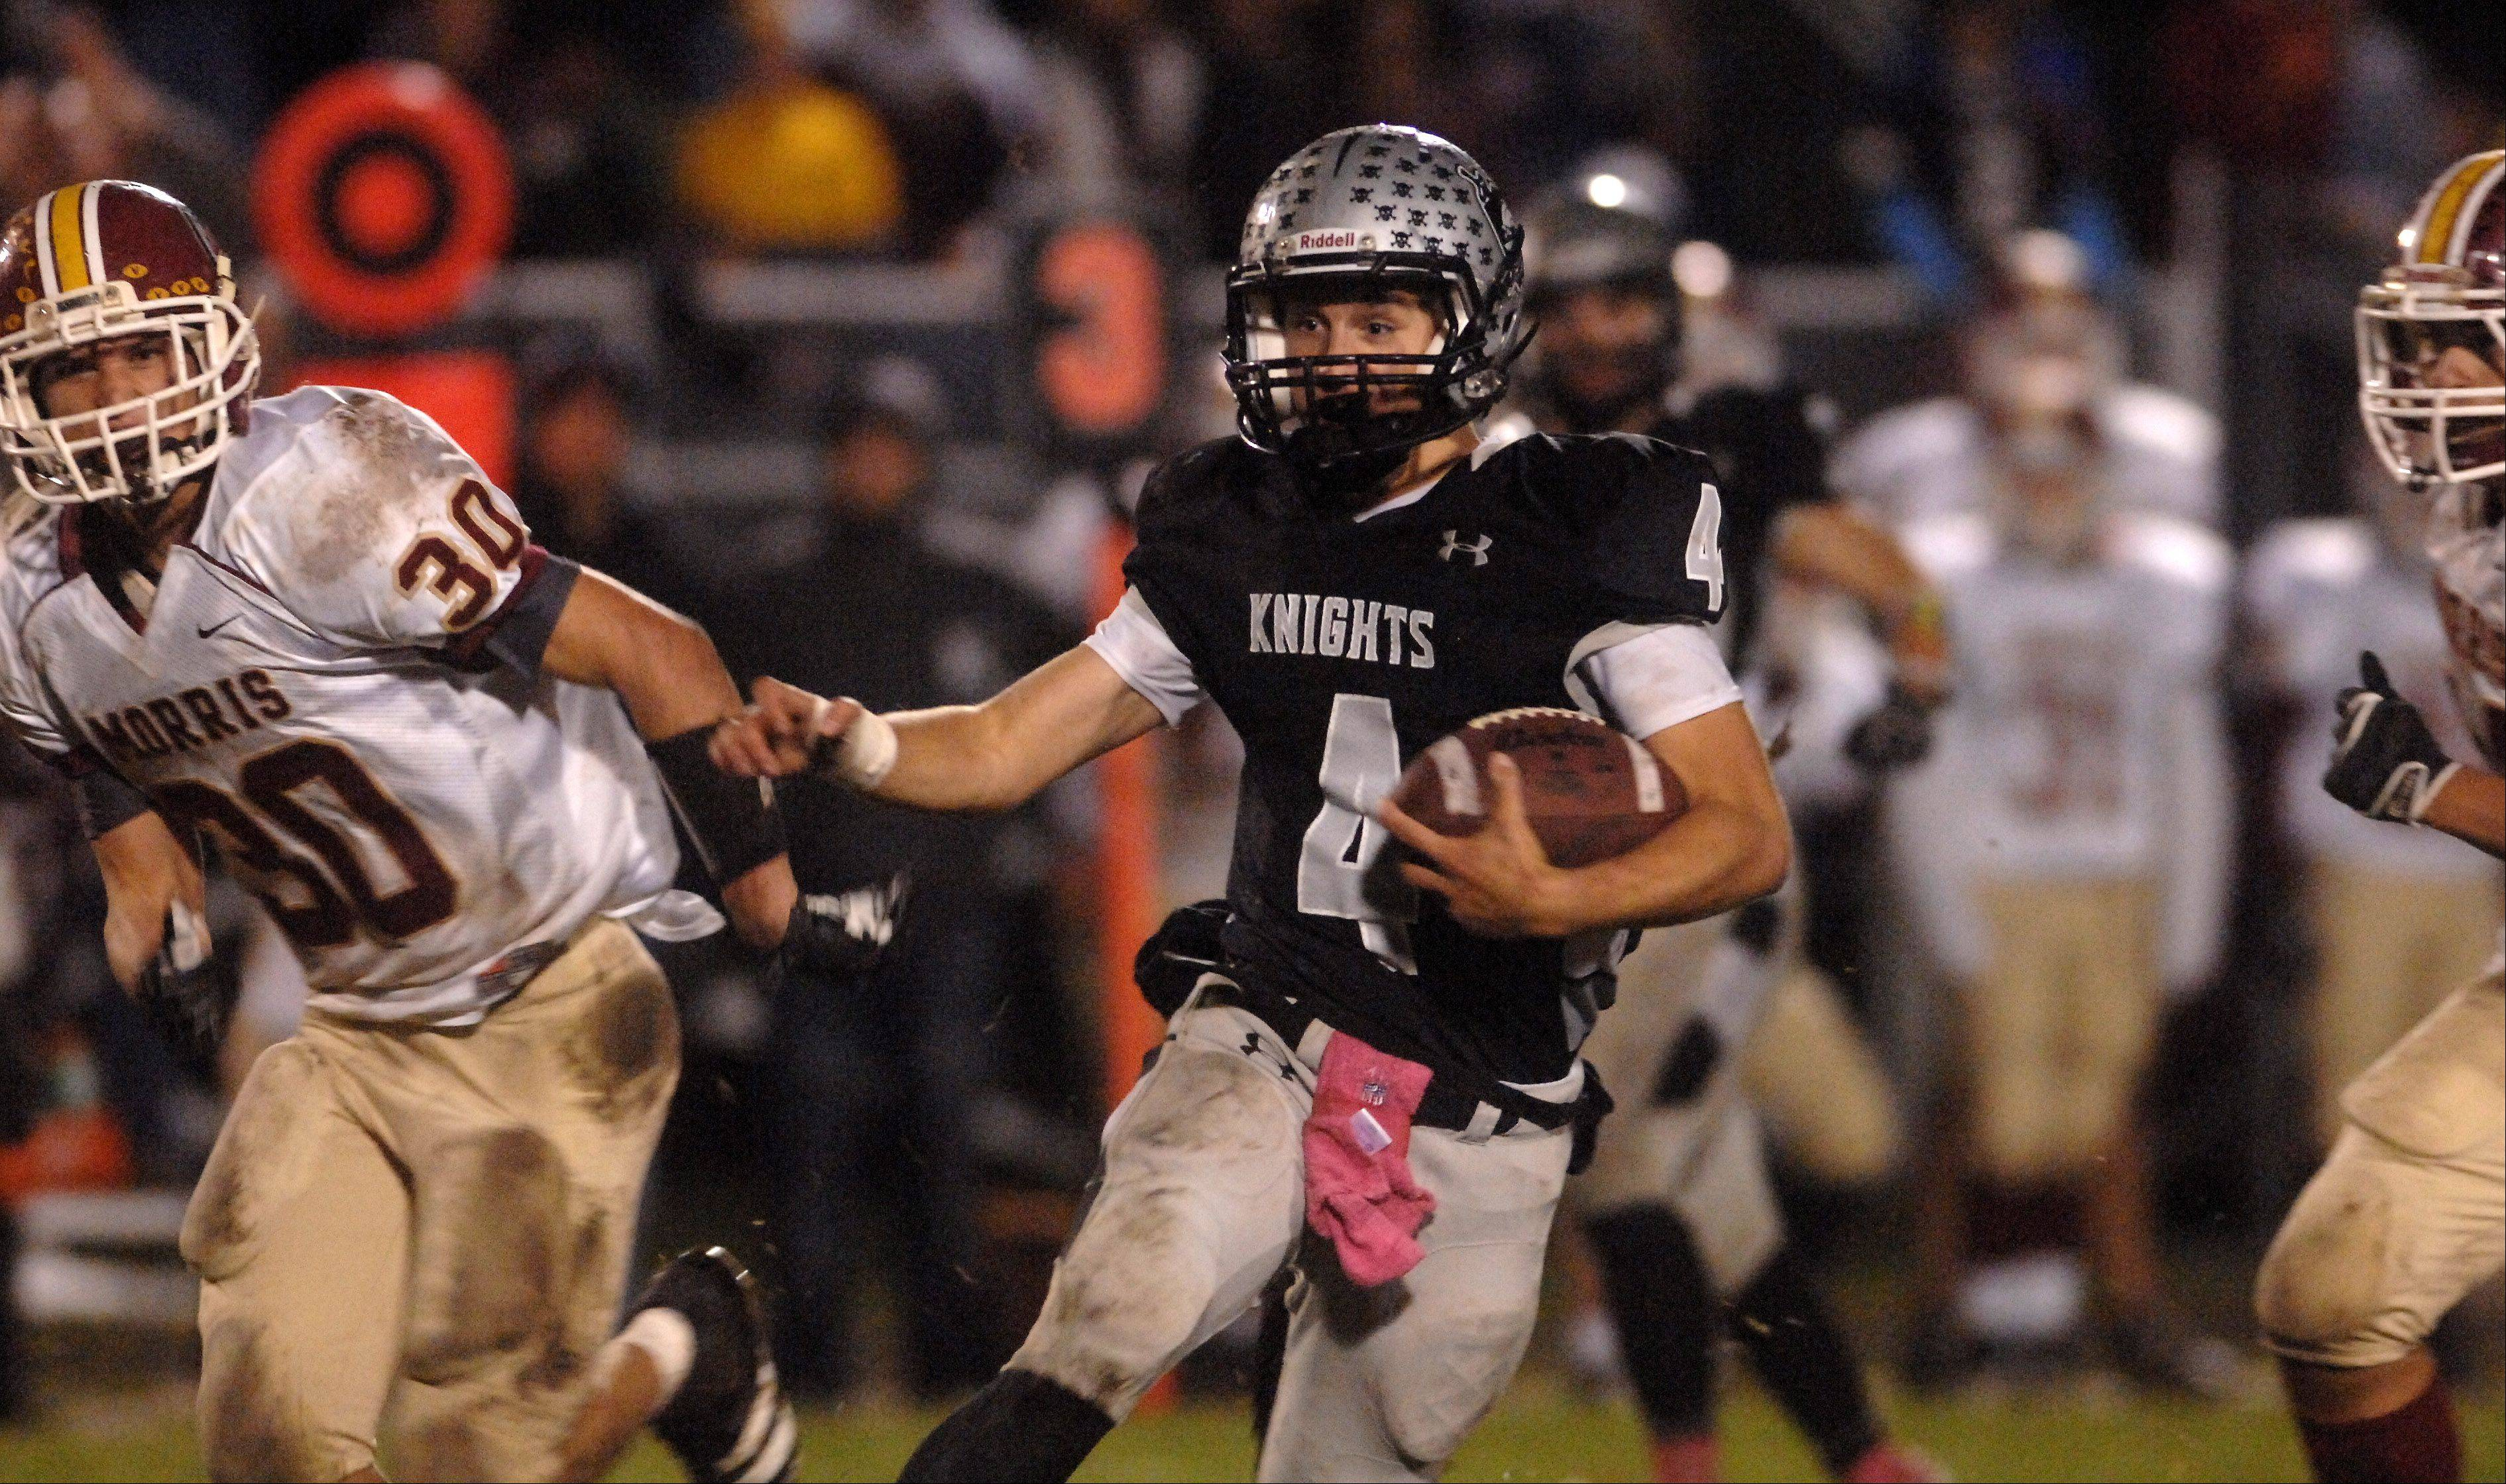 Kaneland's Drew David breaks a big run on the game-winning drive against Morris during Friday's game in Maple Park.